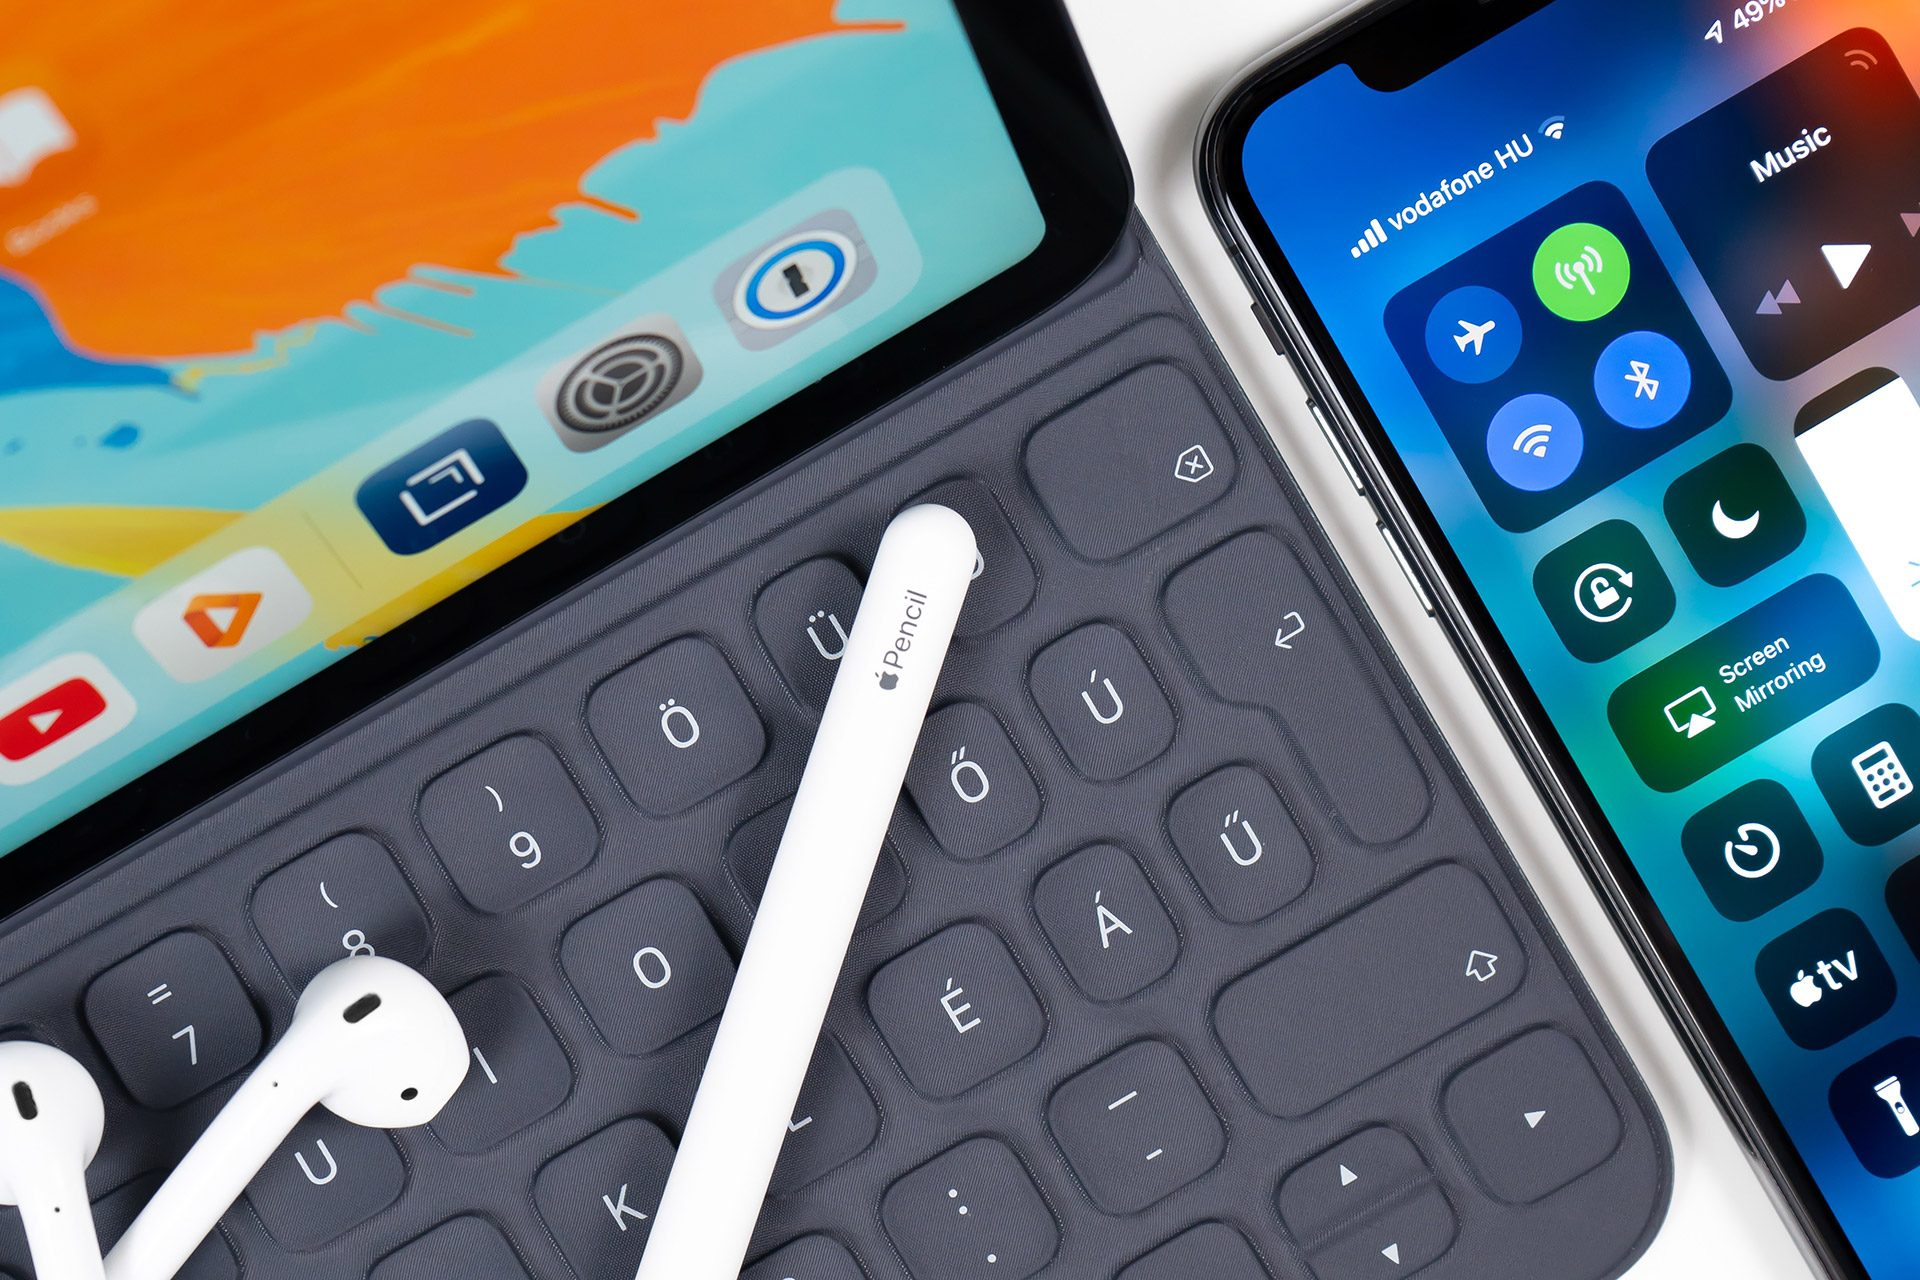 Review: 'Apple Pencil 2' is a huge step forward but still not perfect